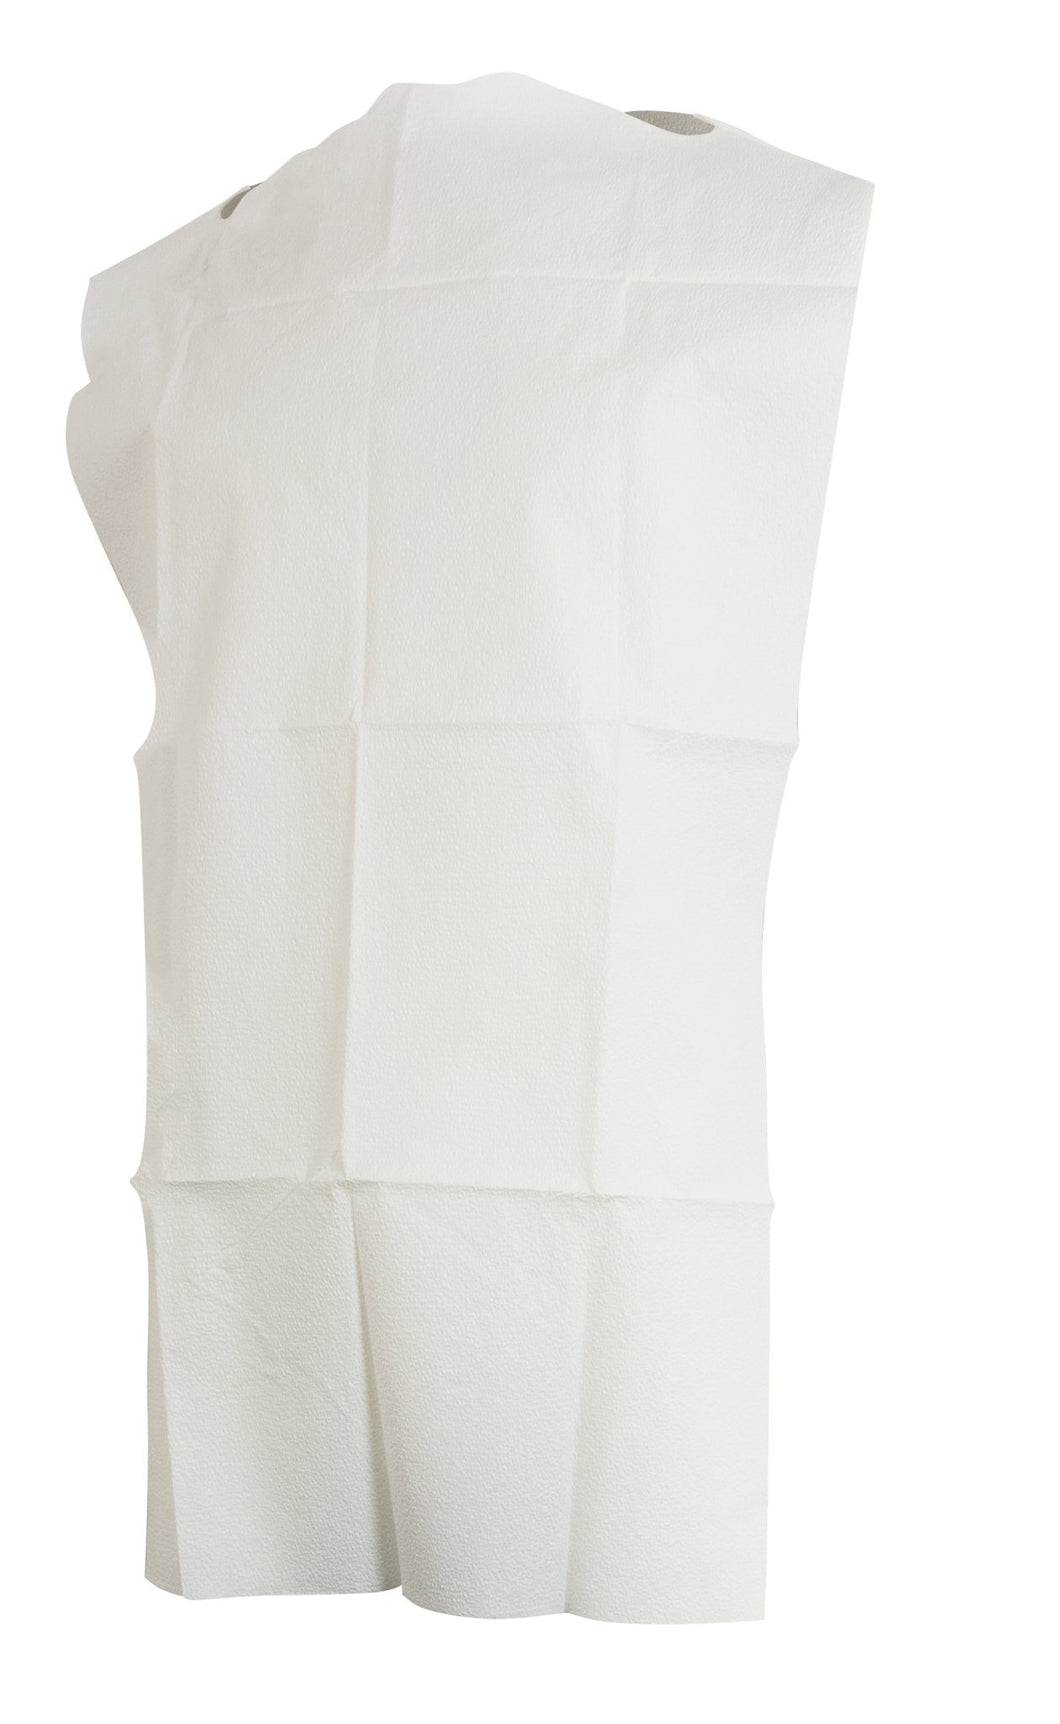 McKesson Bib Without Pocket